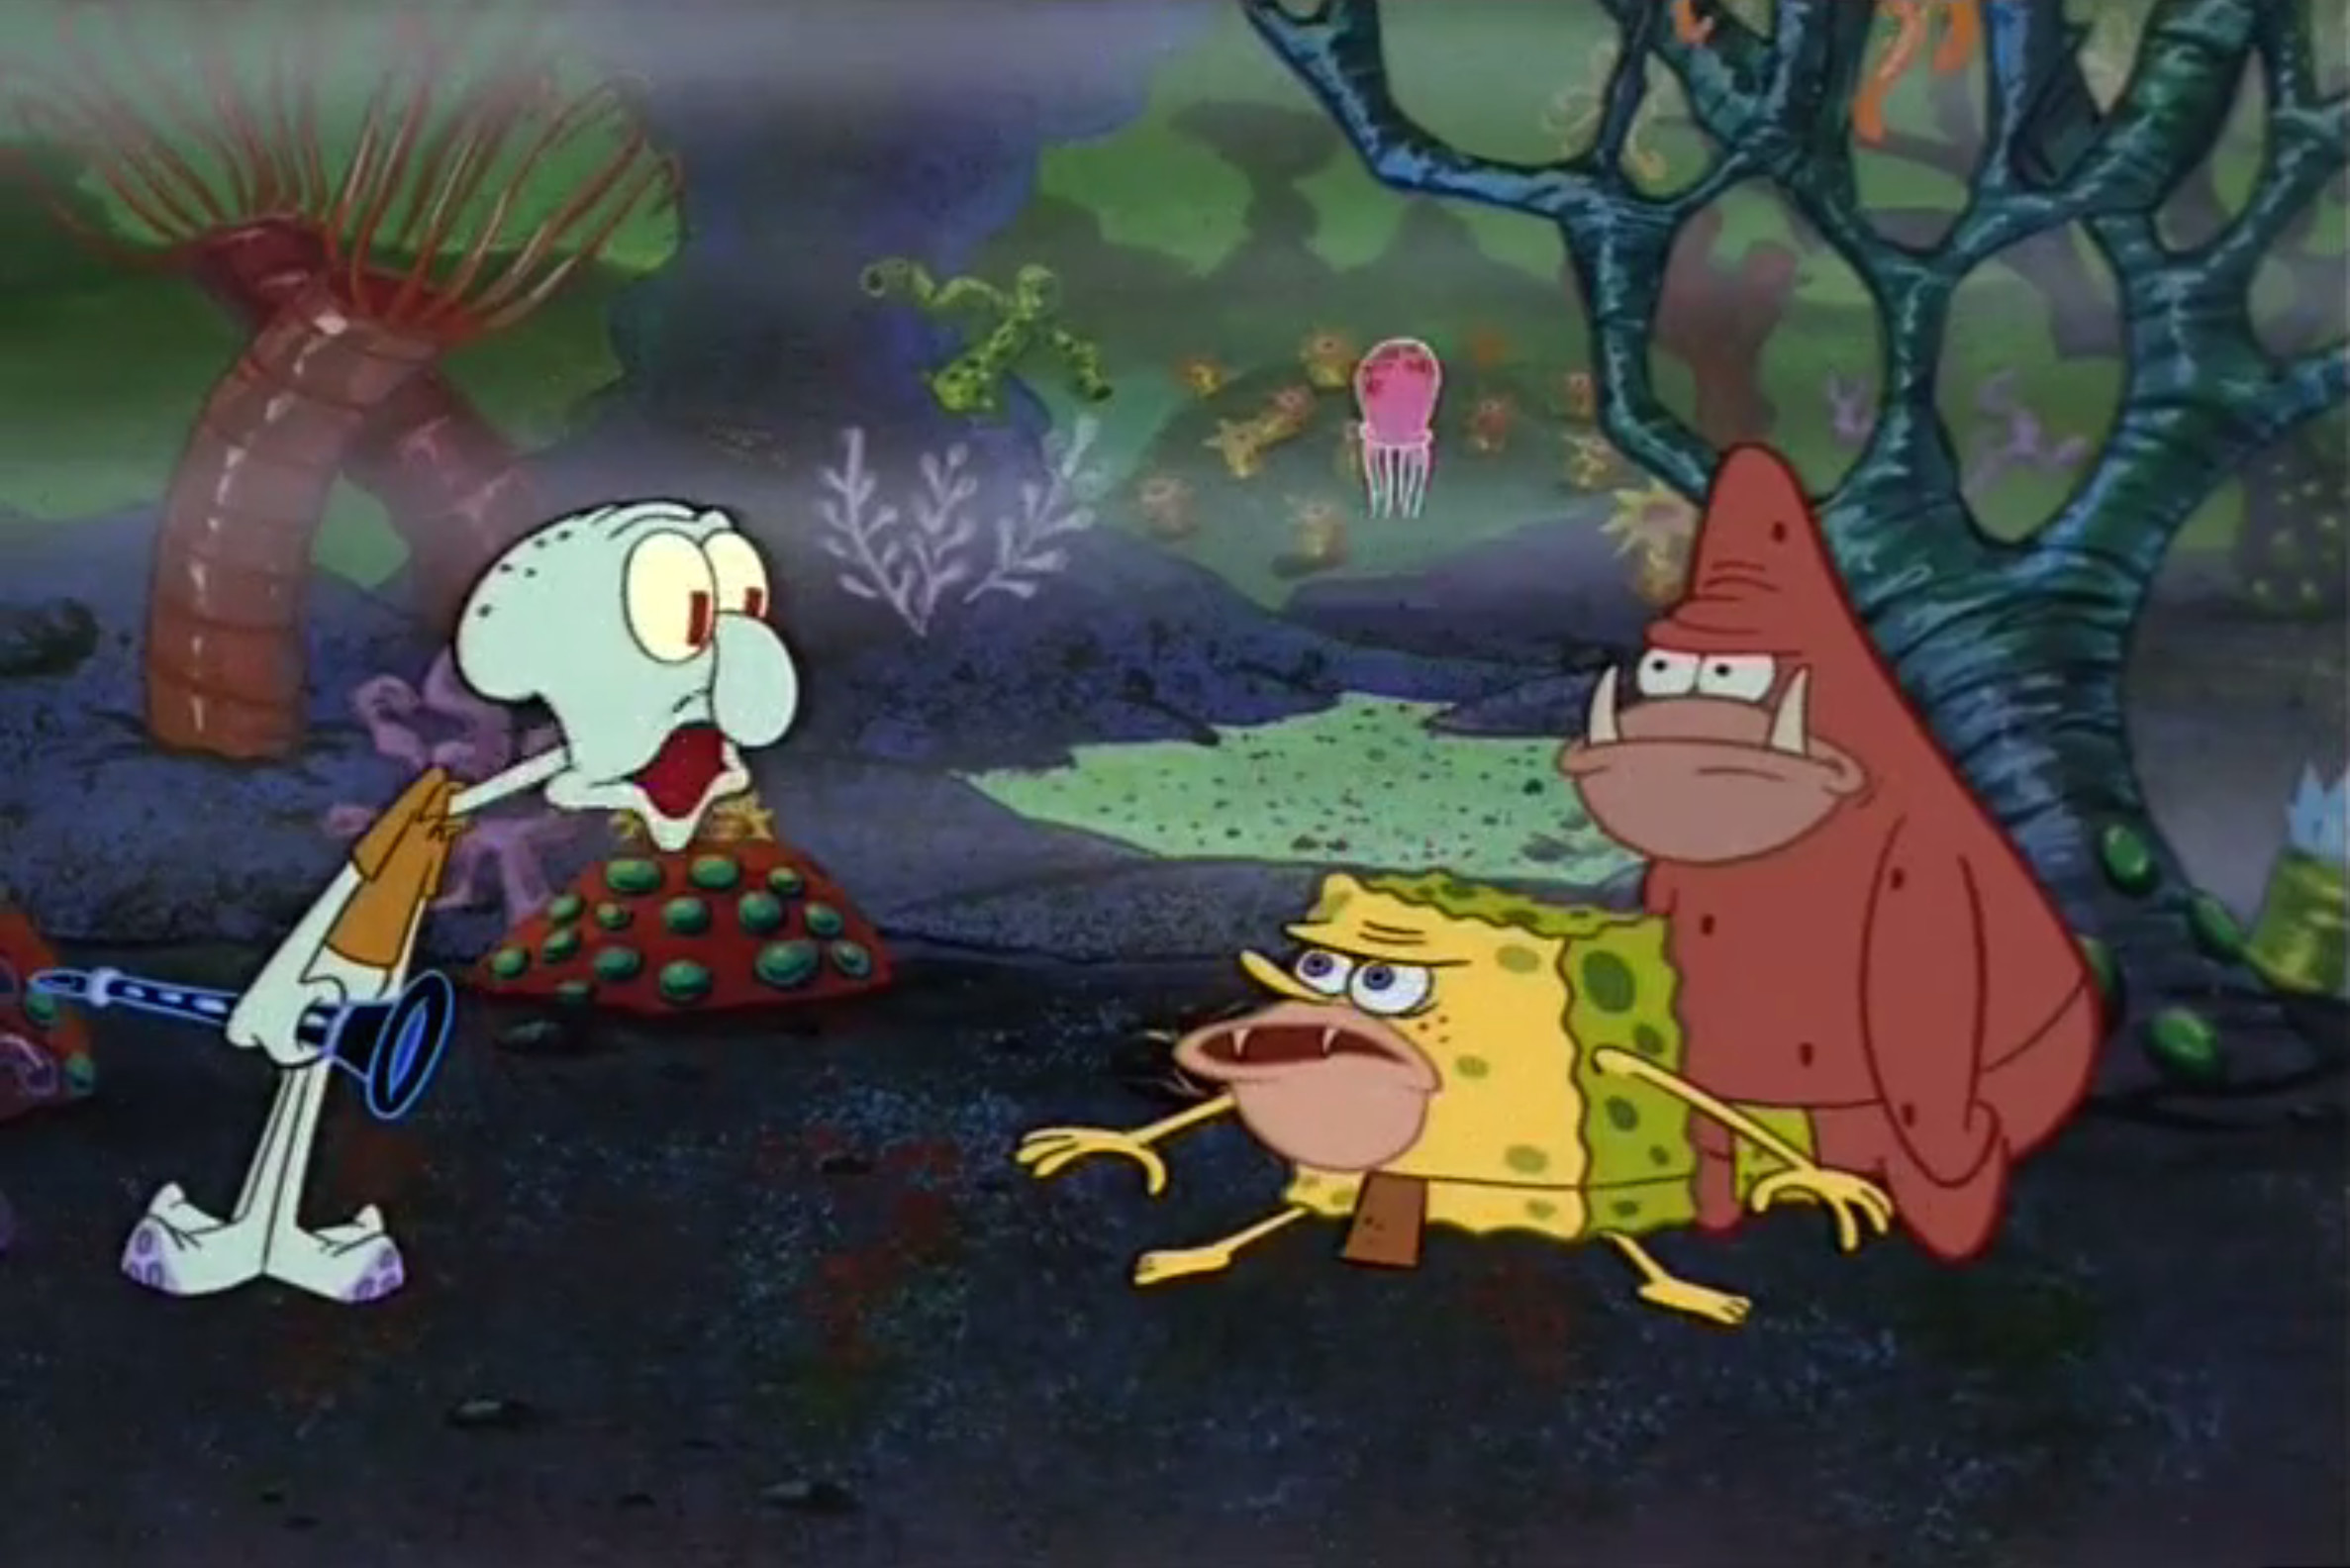 Res: 2374x1584, 1920x1080 Squidward's Suicide | Slender Fortress Non-Official Wikia |  FANDOM powered by Wikia